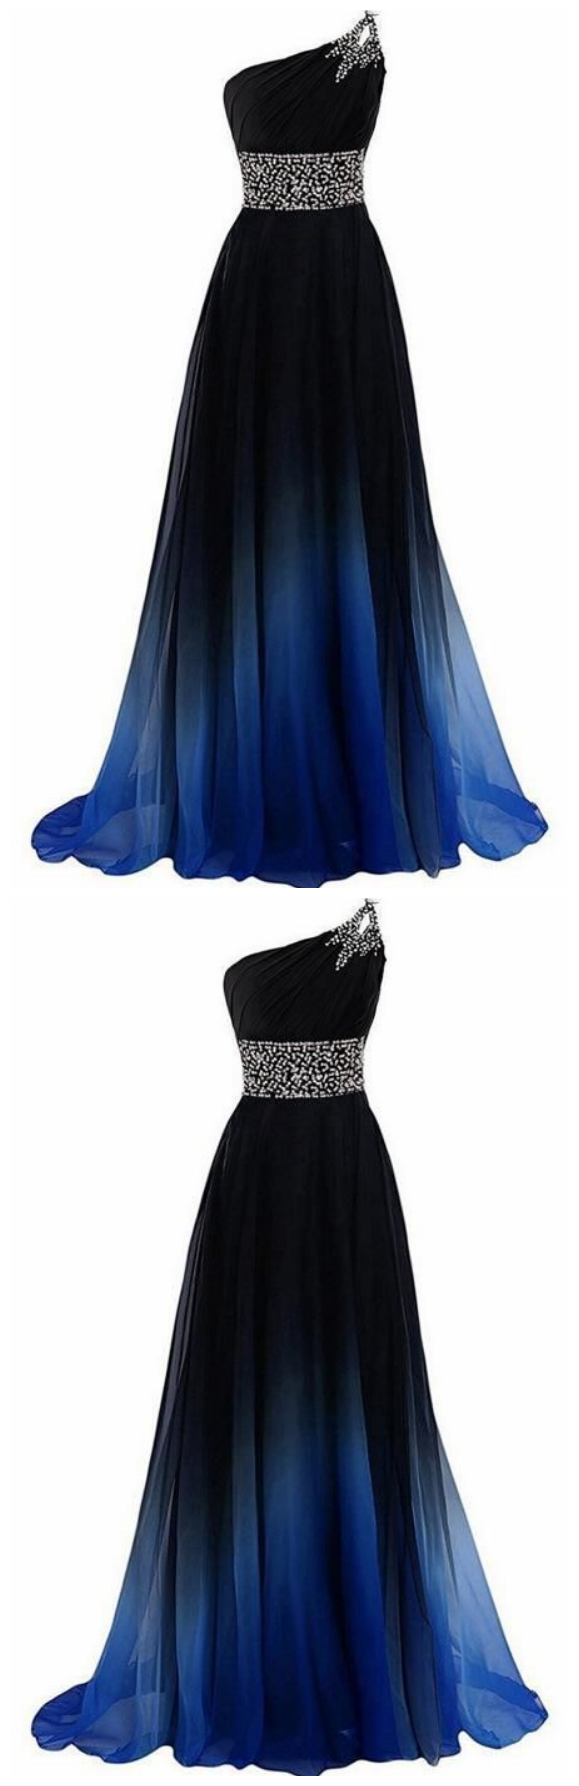 New Arrival One Shoulder Beaded Long Prom Dress Custom Made Women Party Gowns